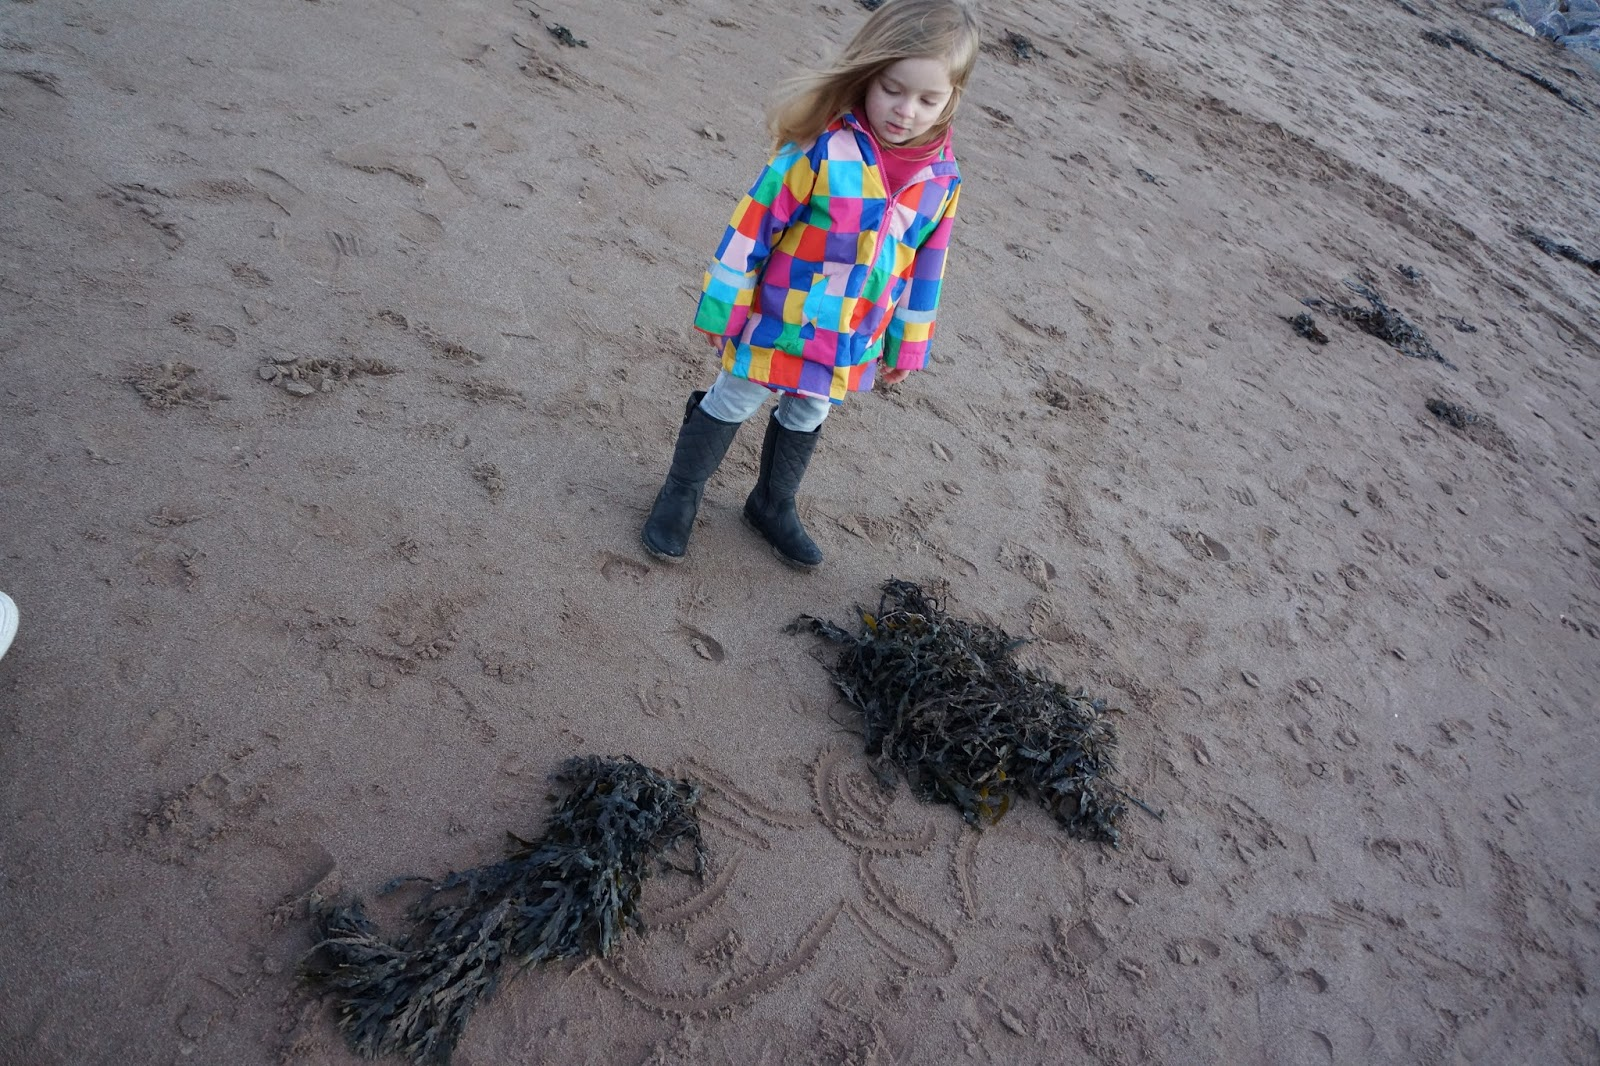 seaweed mermaid on sand at beach at butlins minehead